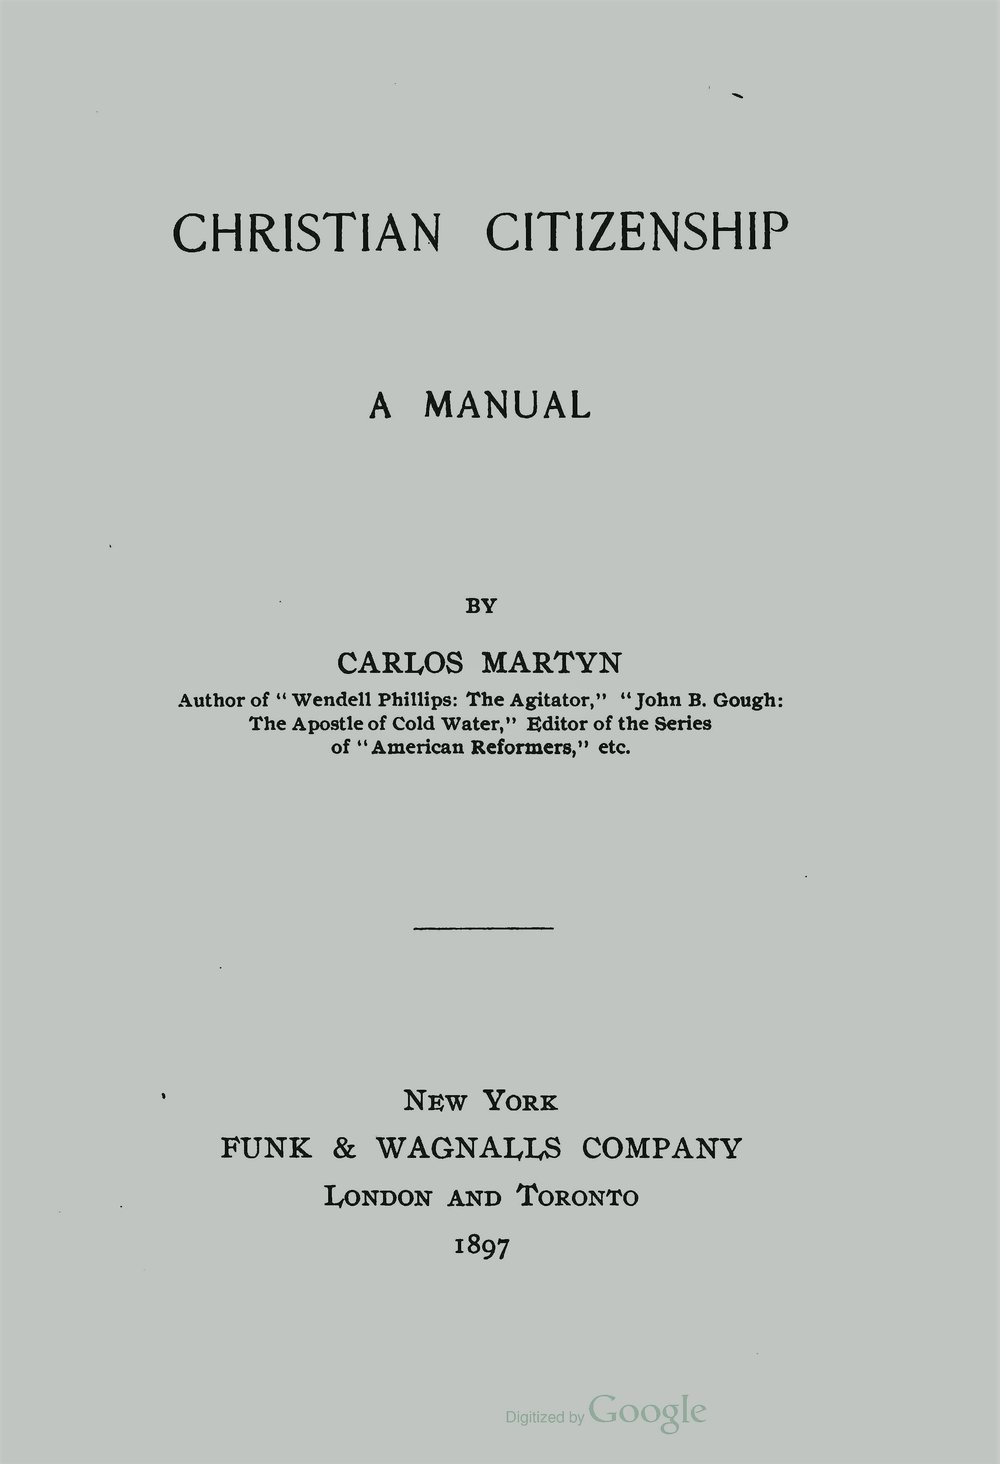 Martyn, William Carlos, Christian Citizenship A Manual Title Page.jpg